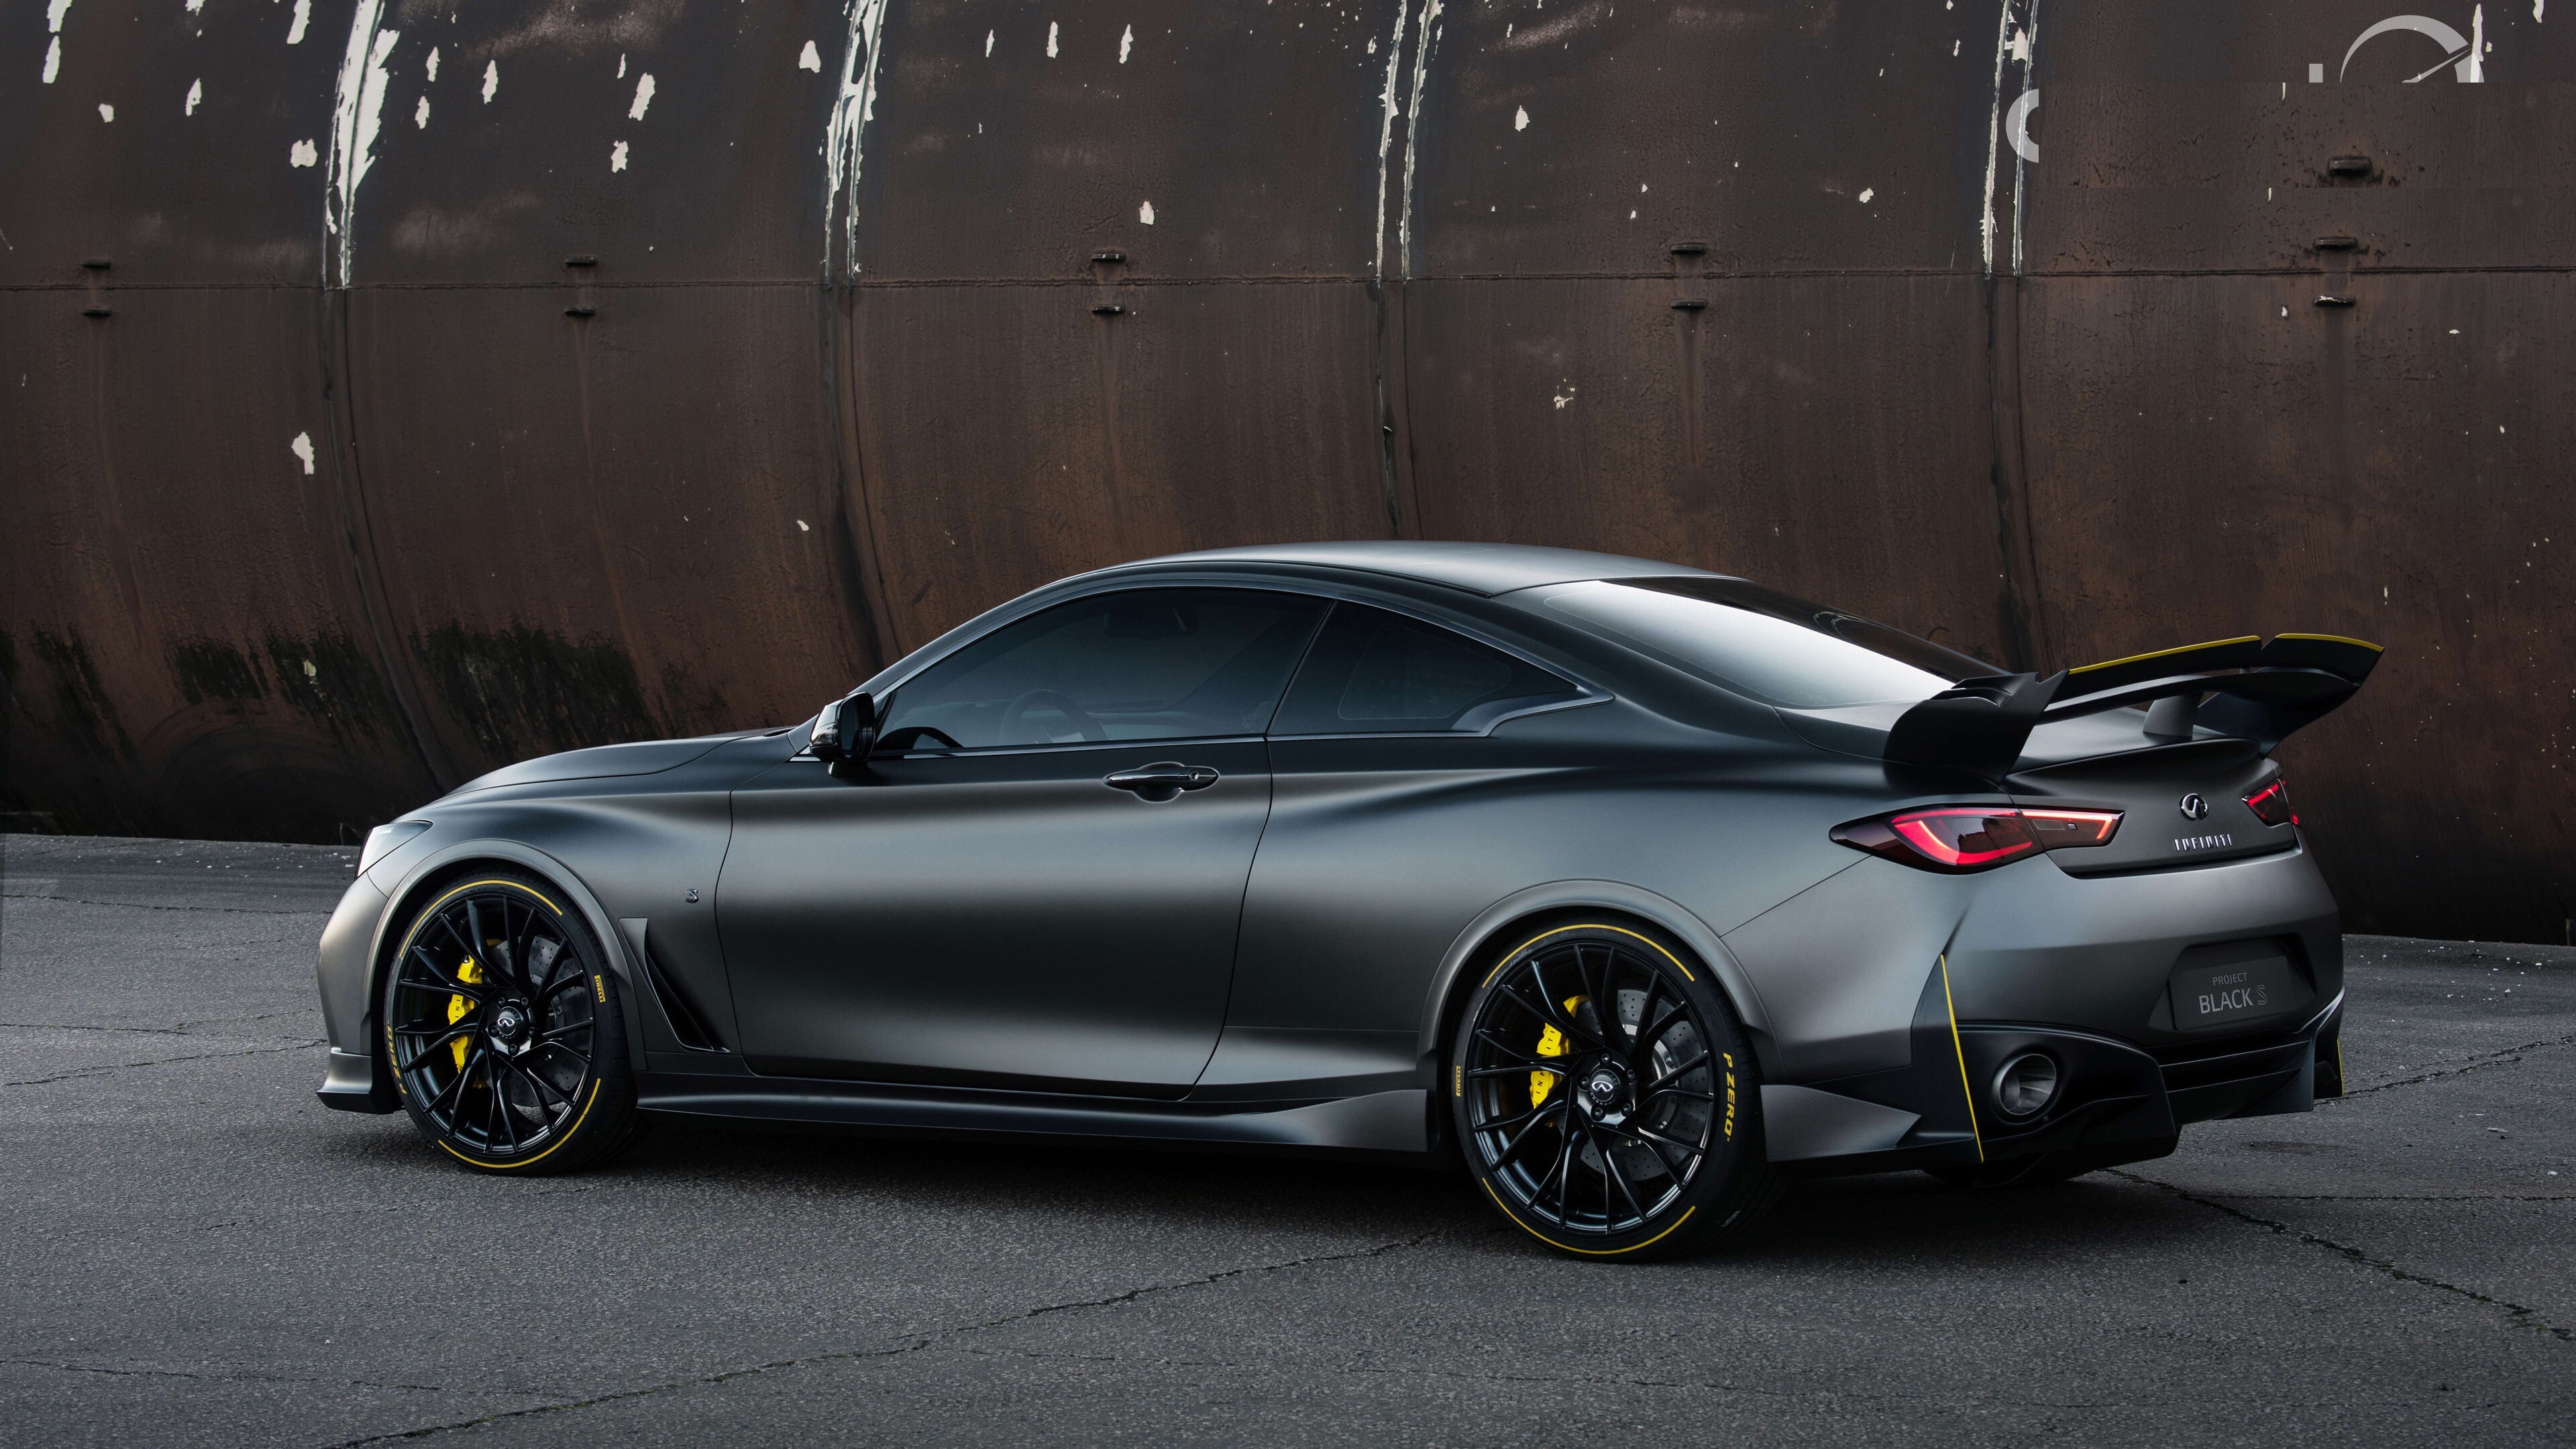 Infiniti project black s 4k car hd wallpapers - 4k wallpaper for cars ...